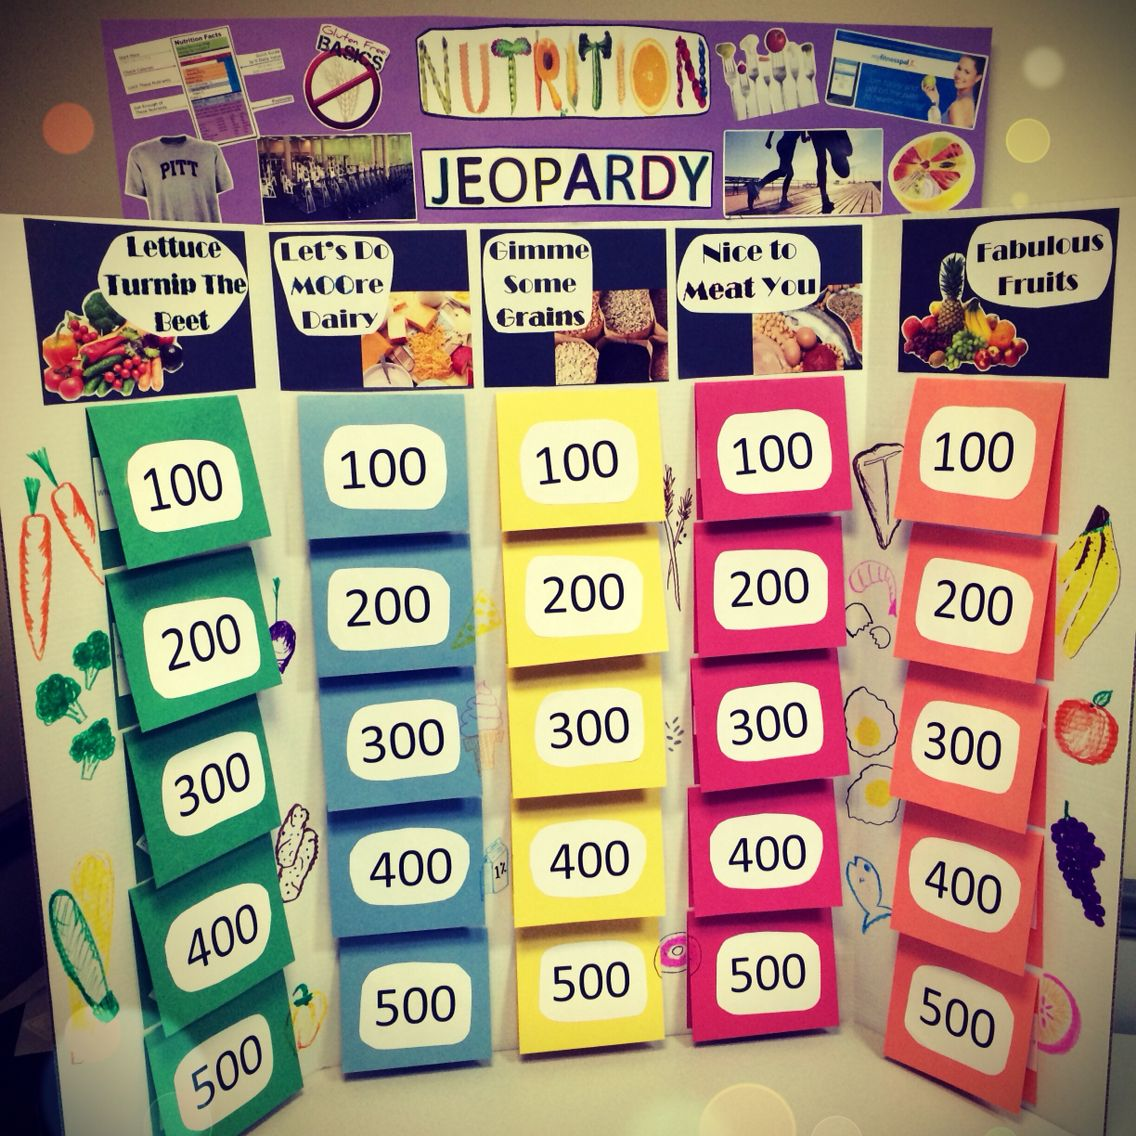 Jeopardy Game I Made For The Healthy U Fair This Year